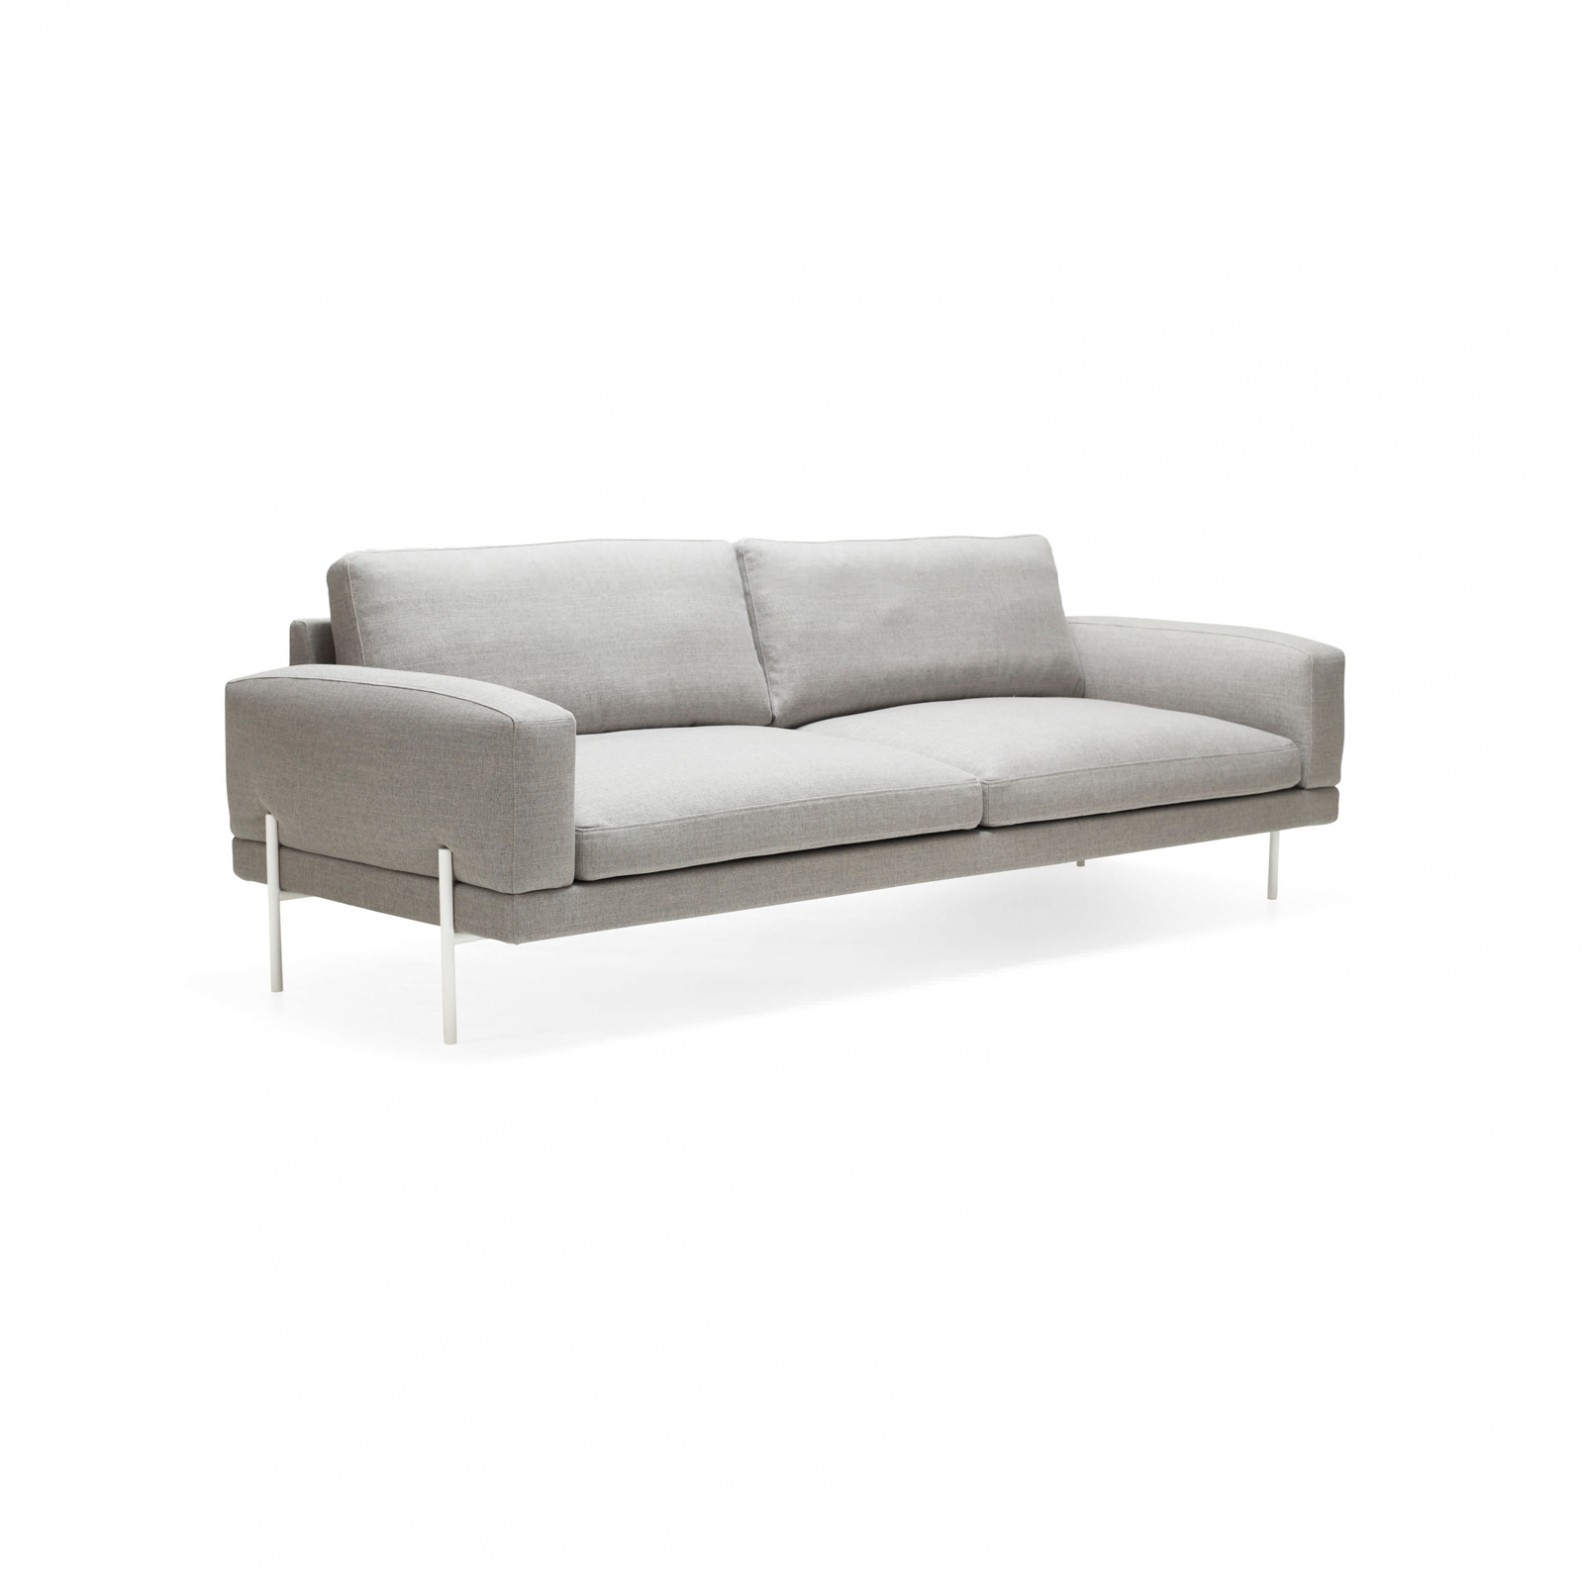 Couchgarnituren In U-form Couch 3 Sitzer — Vianova Project